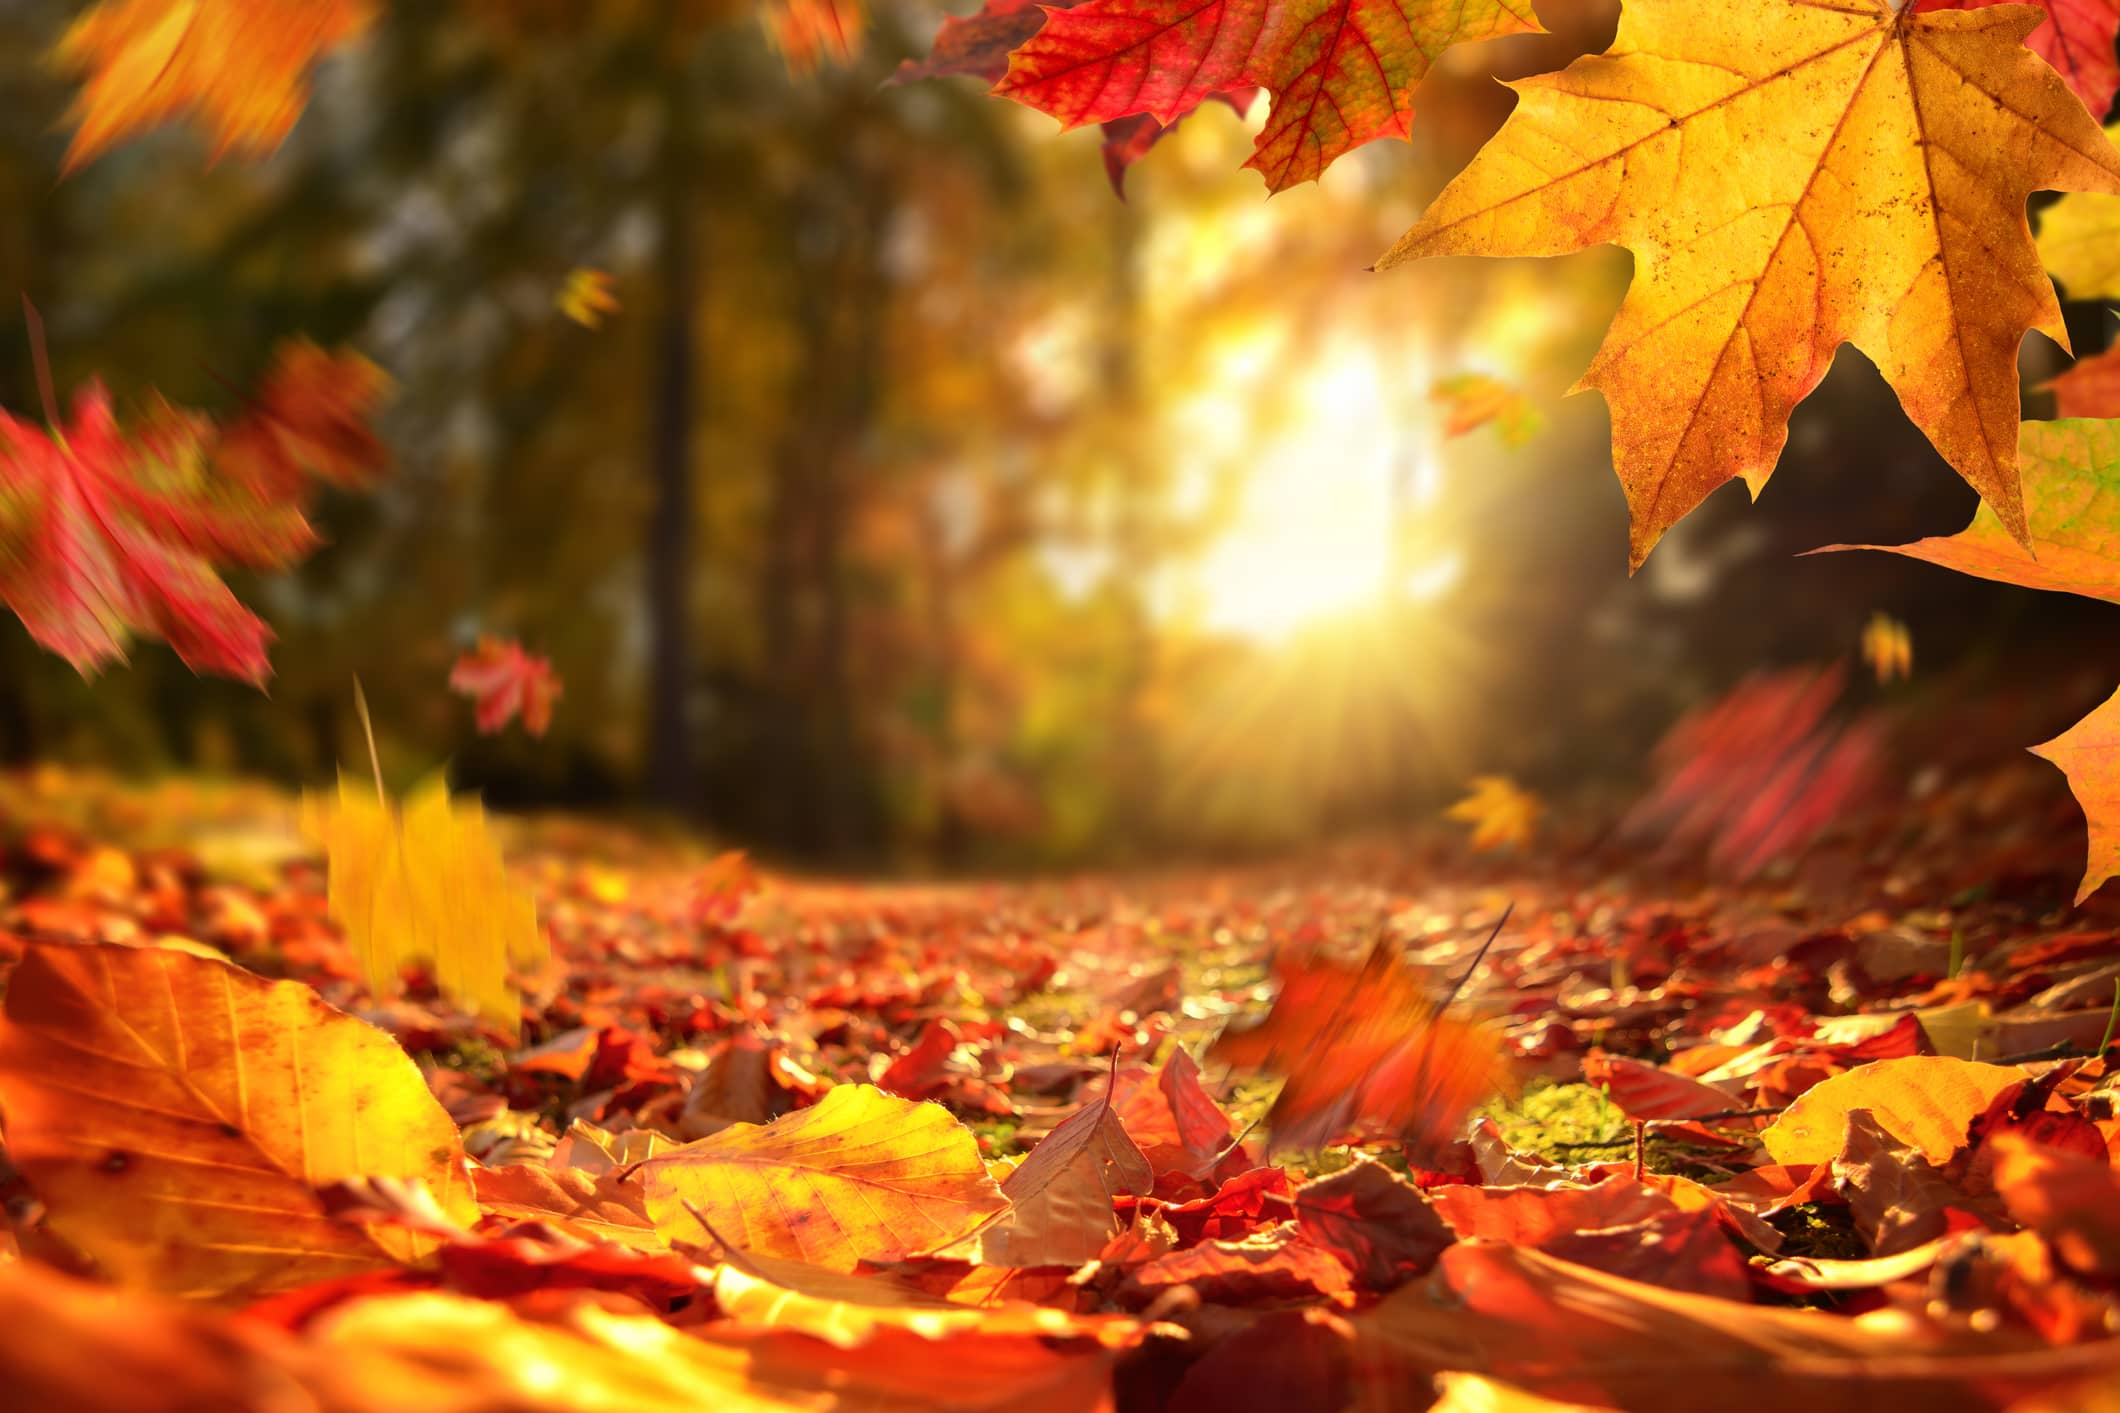 Fall Foliage Map Predicts The Best Time To See Leaves At Their Peak Colors Carina Kfdi Country 101 3 Kfdi